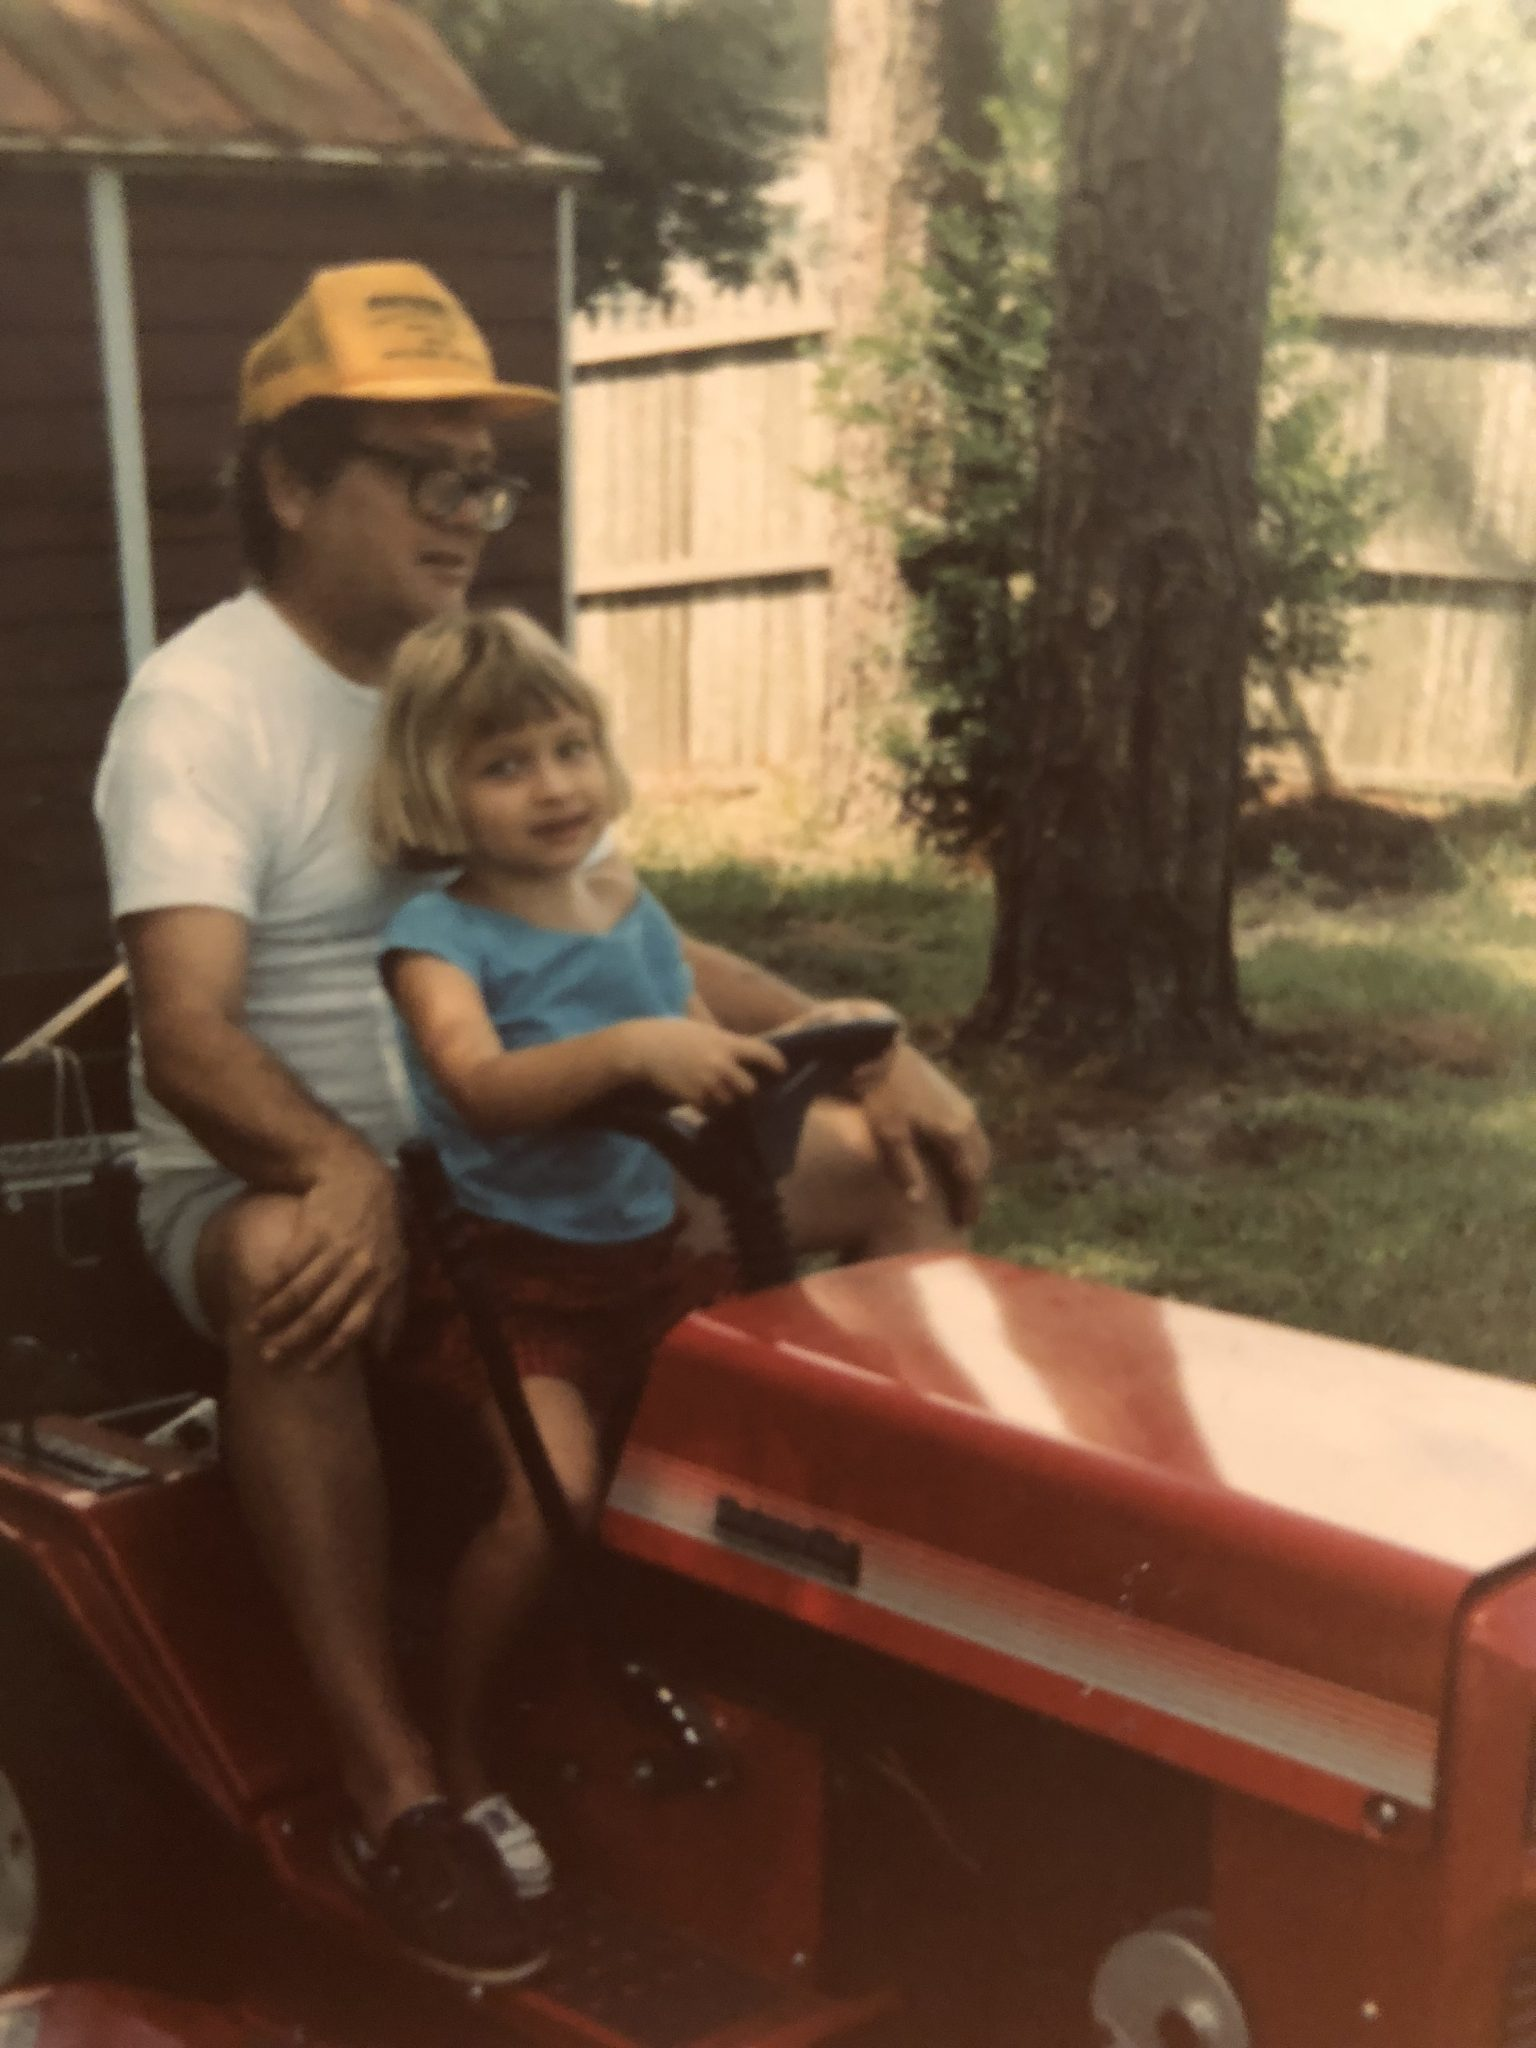 My dad and I riding our beloved lawnmower.